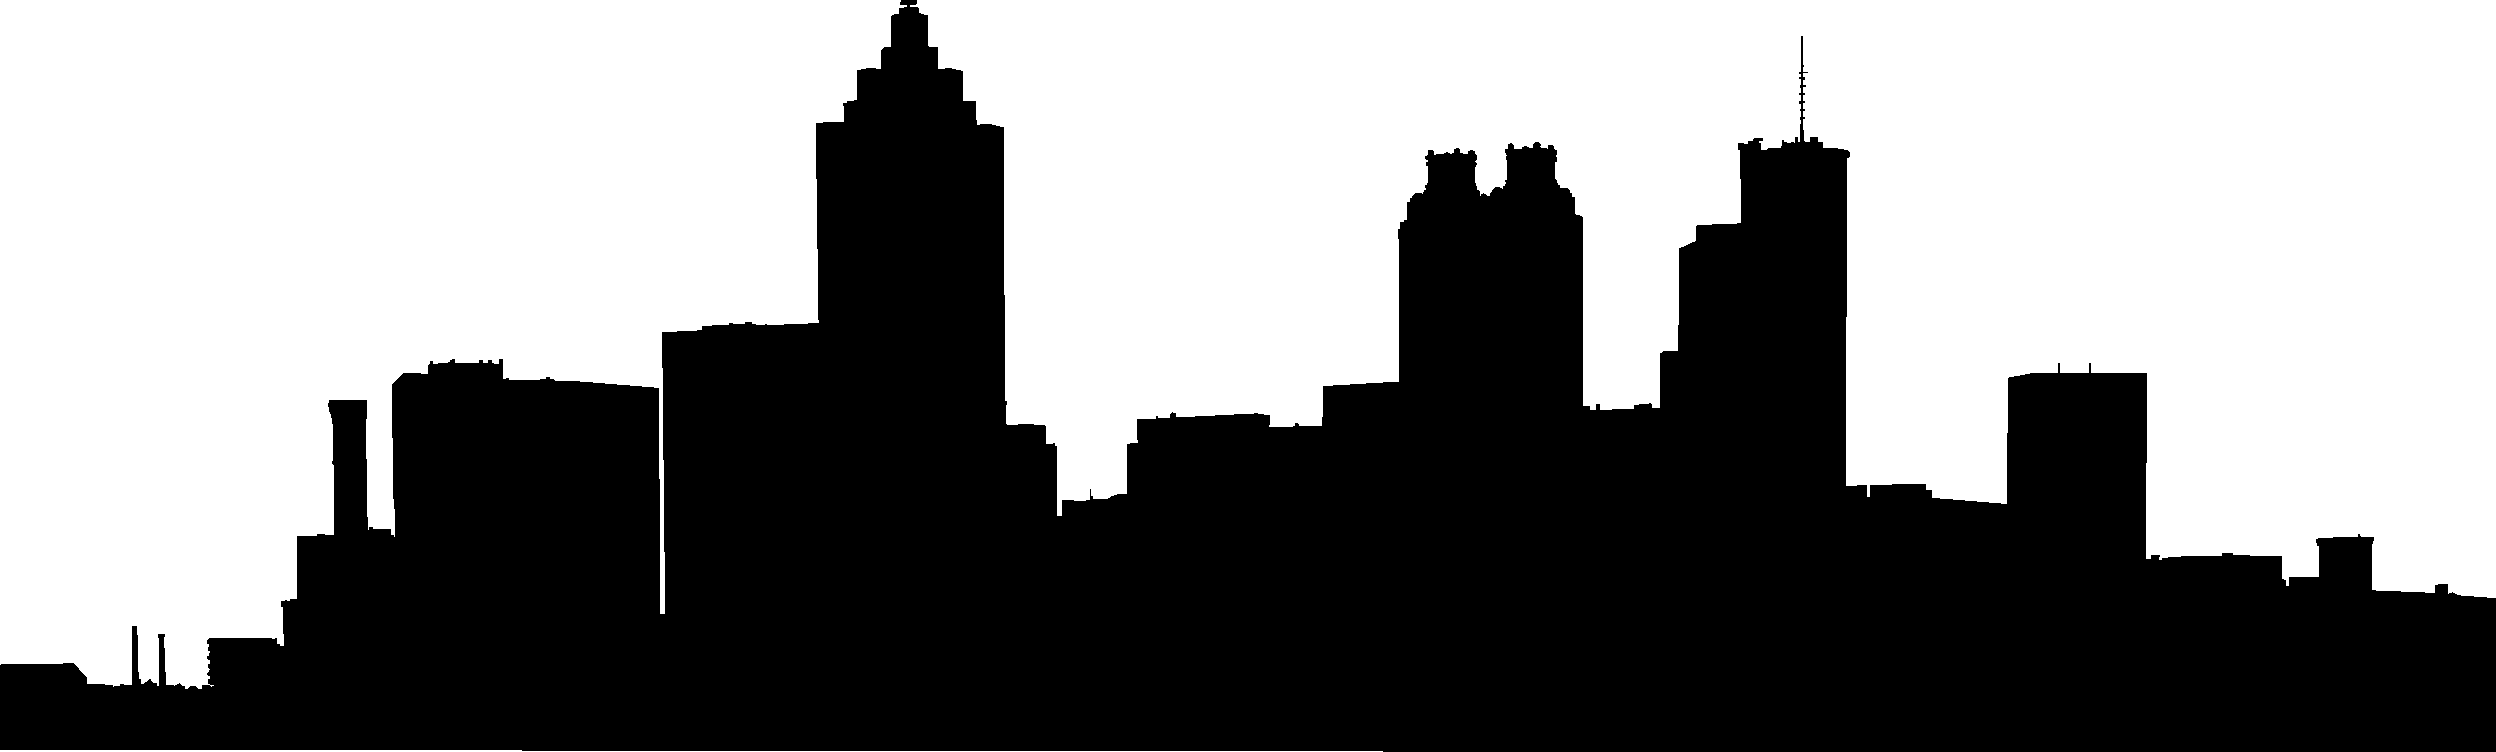 Atlanta Skyline Vector.